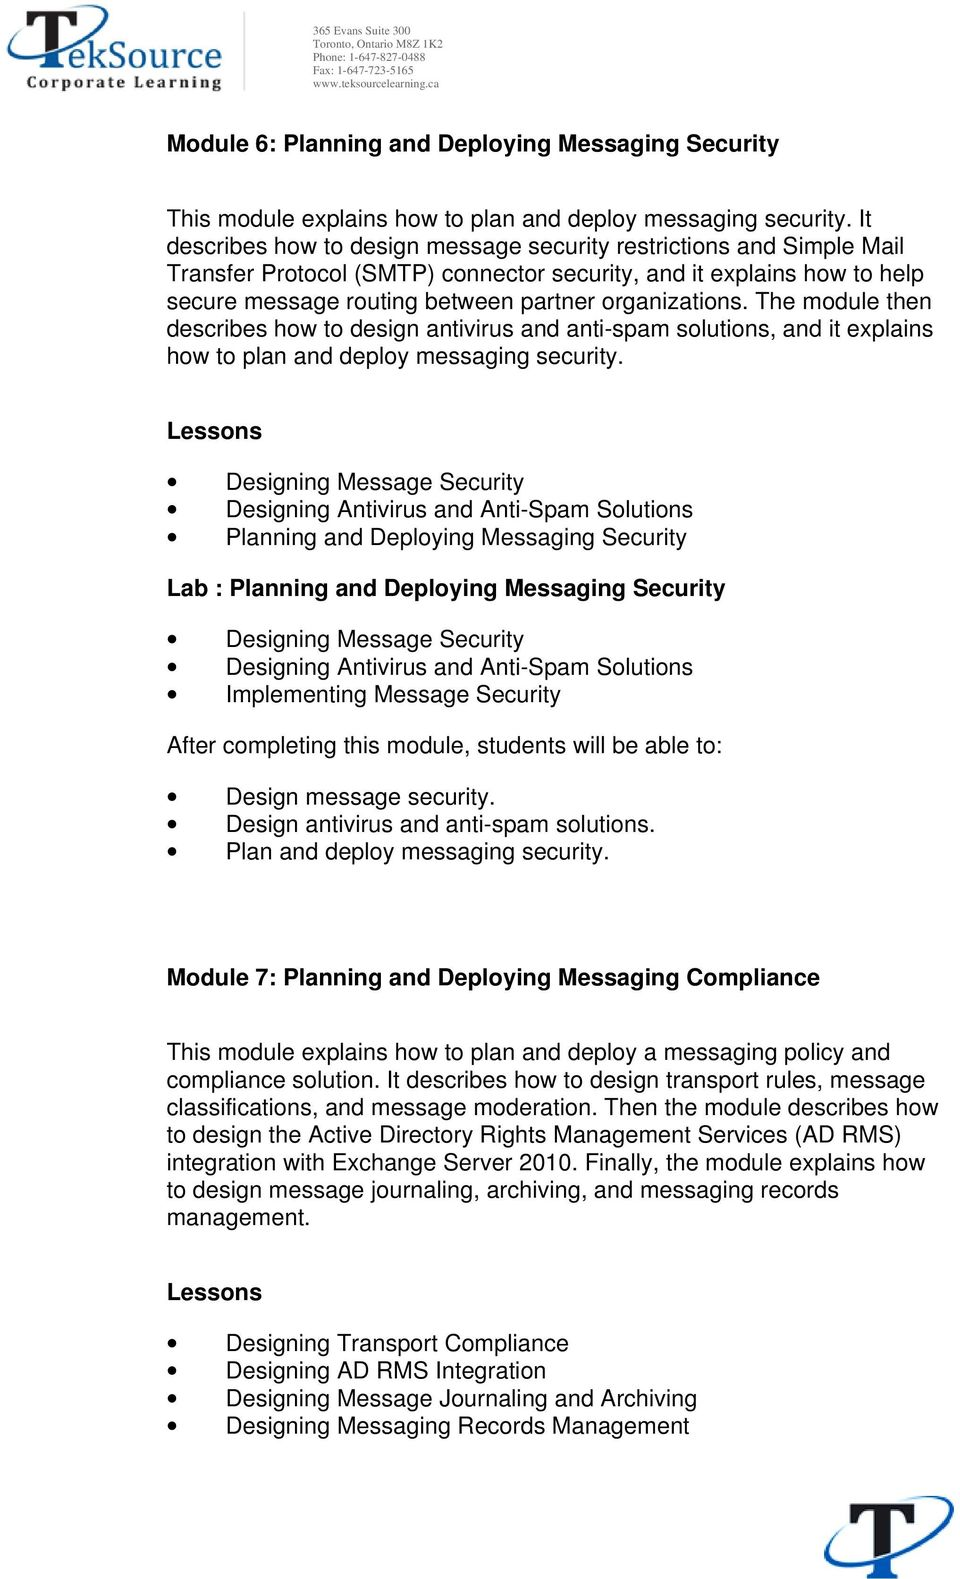 The module then describes how to design antivirus and anti-spam solutions, and it explains how to plan and deploy messaging security.